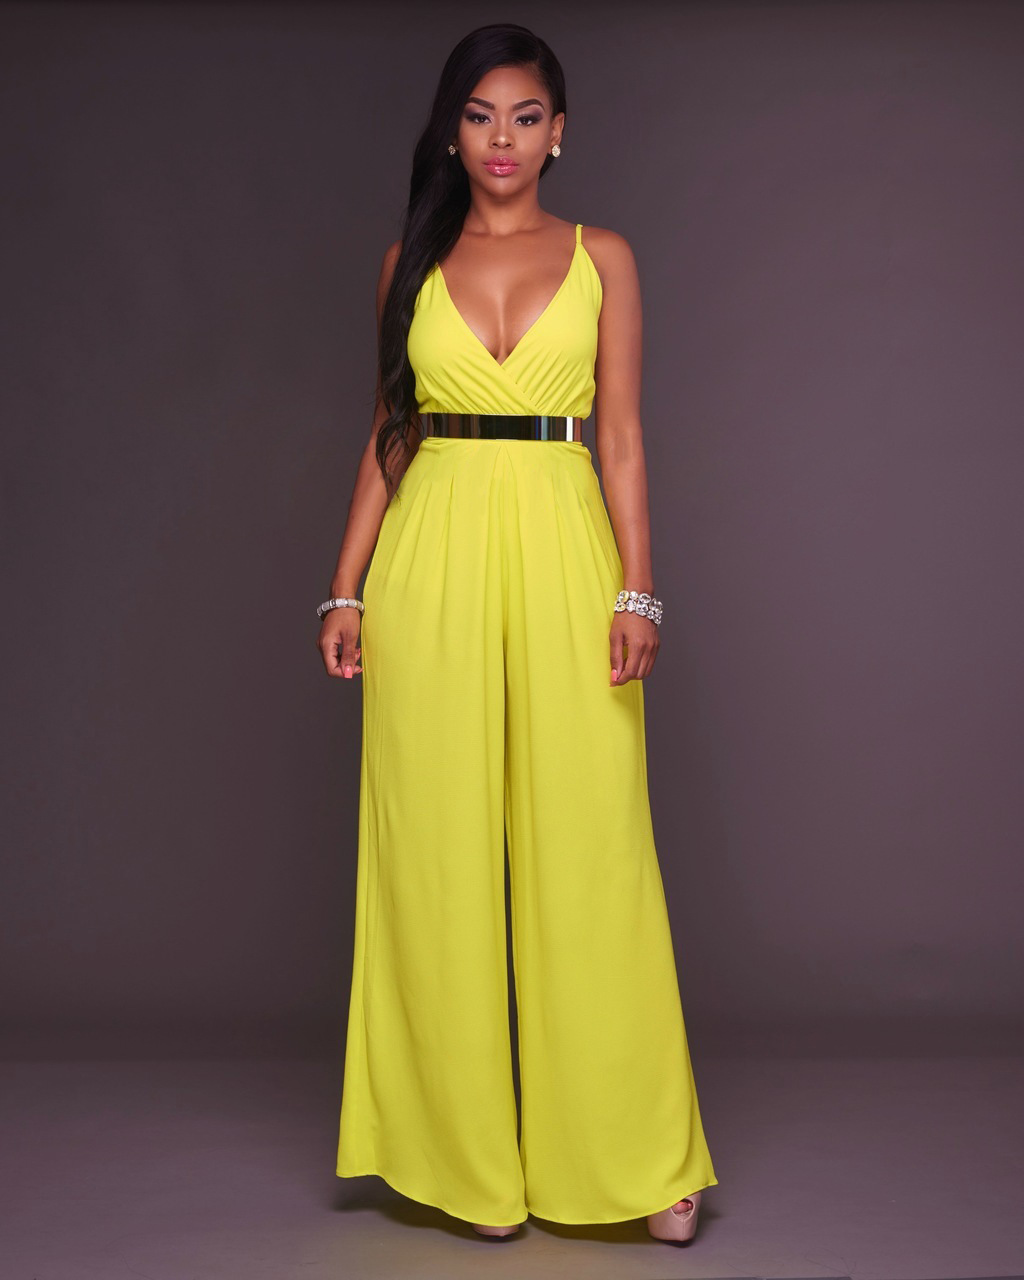 16474757c34b US  7.66 - Light Yellow V-neck High Waist Strappy Loose Jumpsuit 25558-3 -  www.global-lover.com